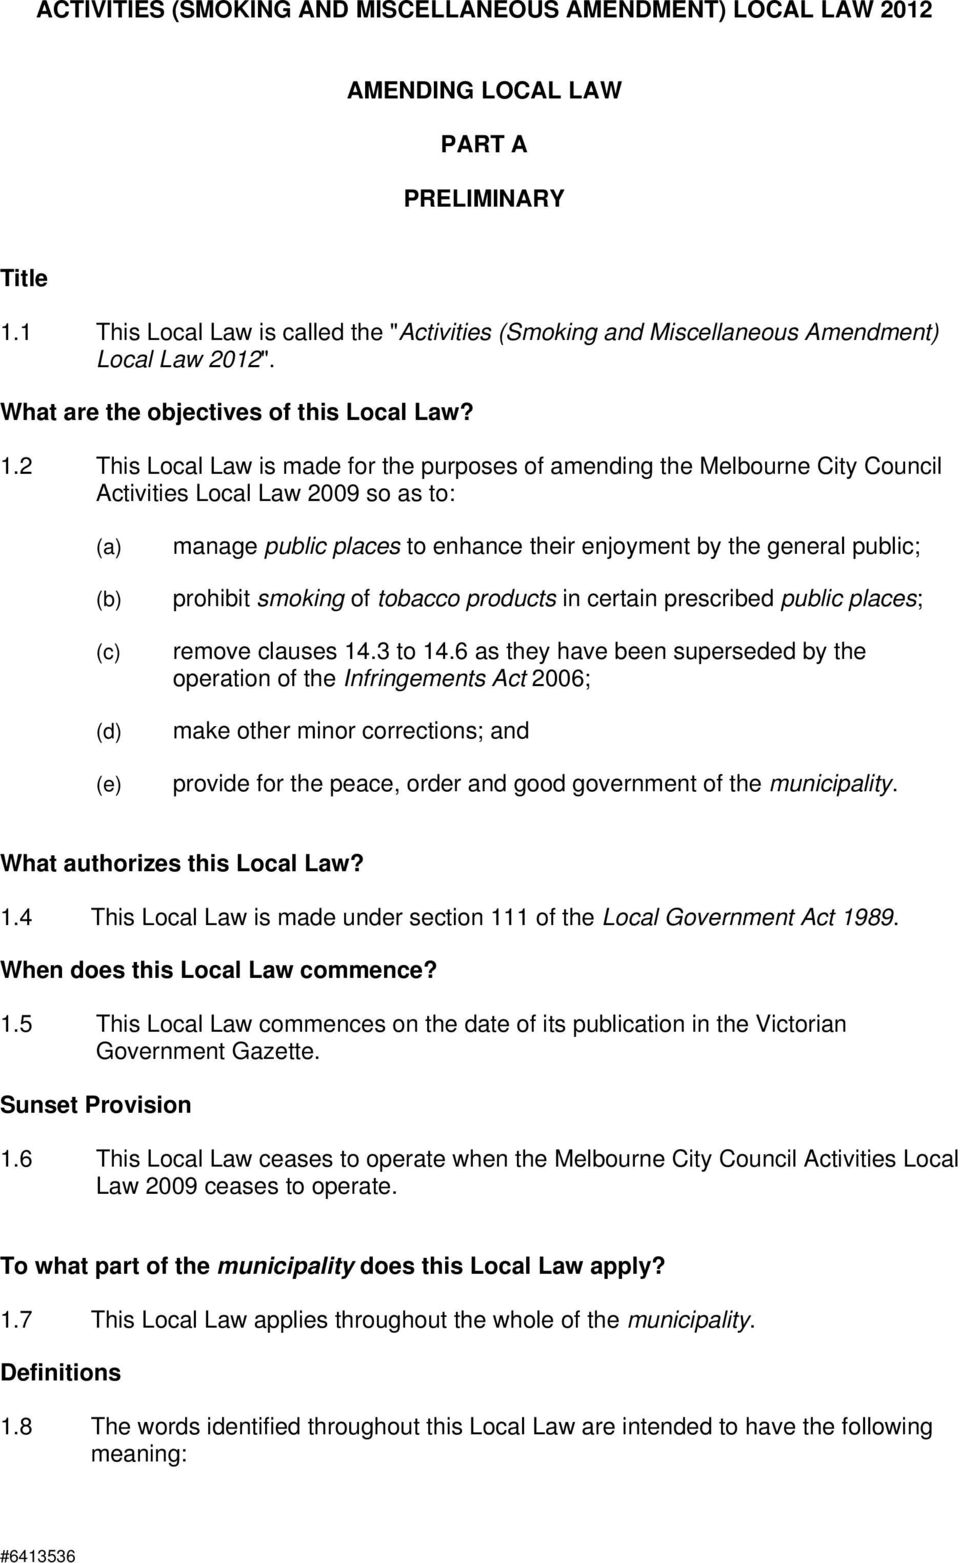 2 This Local Law is made for the purposes of amending the Melbourne City Council Activities Local Law 2009 so as to: (c) (d) (e) manage public places to enhance their enjoyment by the general public;